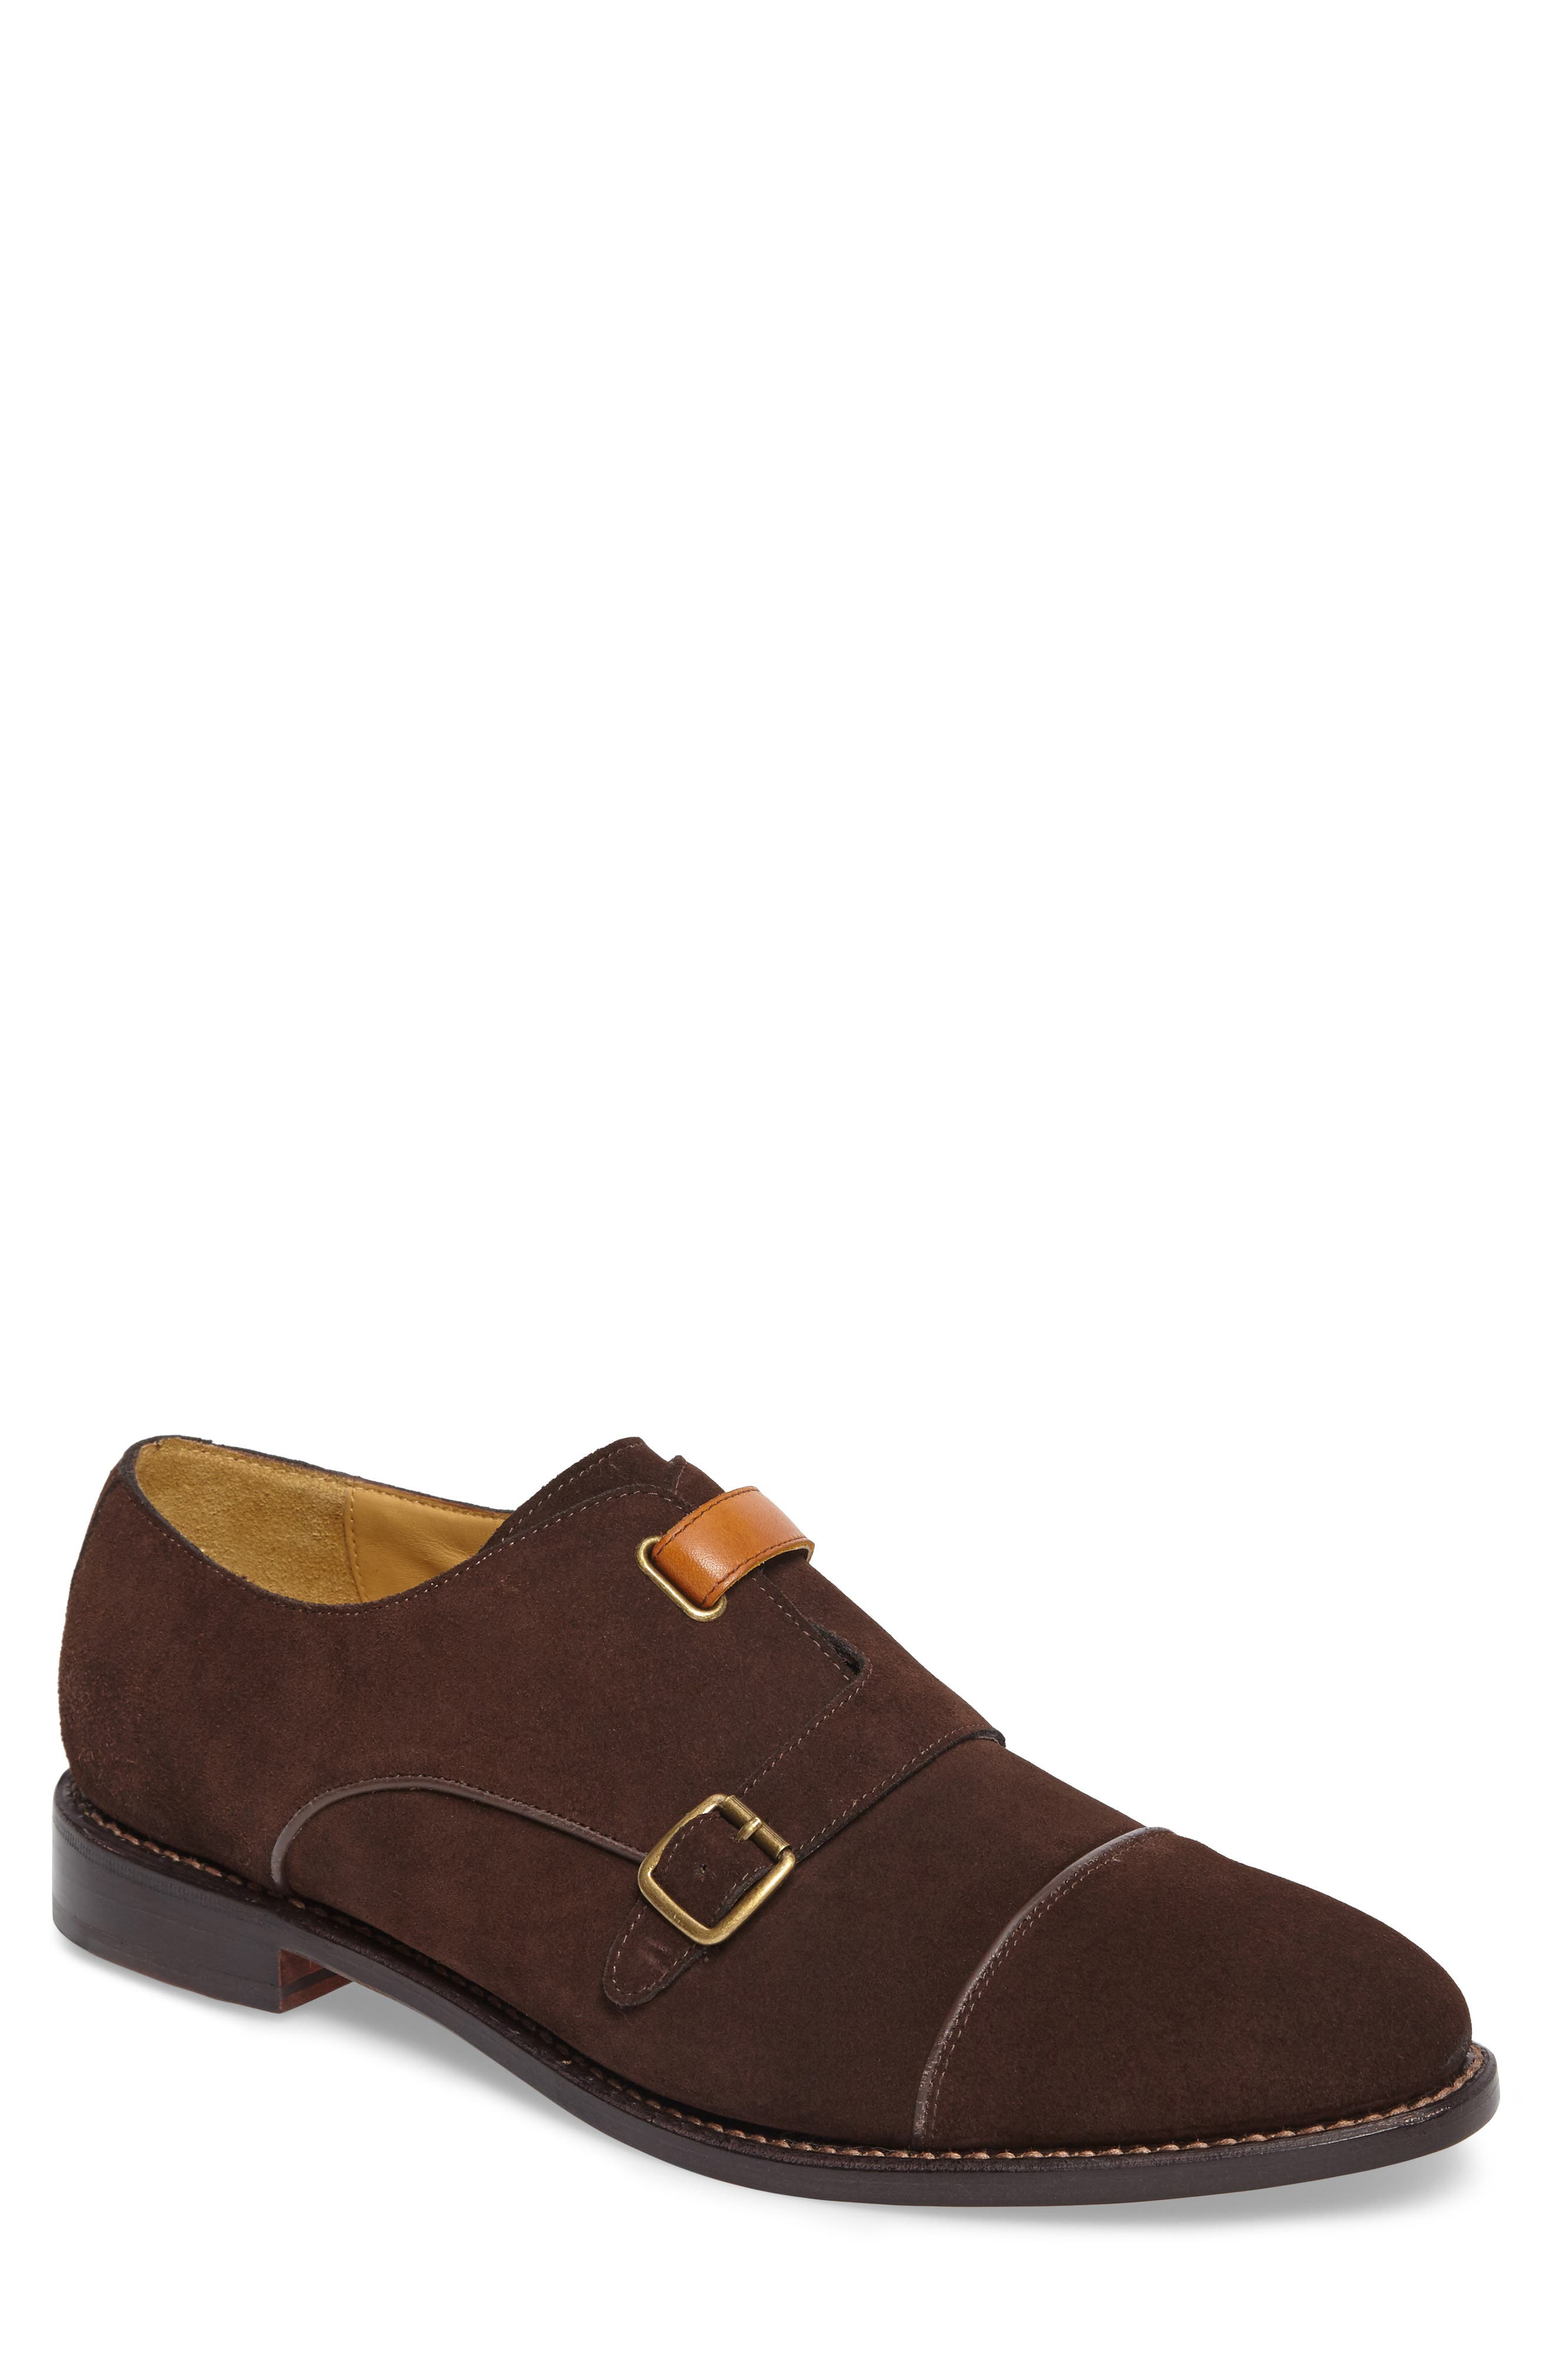 Main Image - Michael Bastian Brando Cap Toe Monk Shoe (Men)